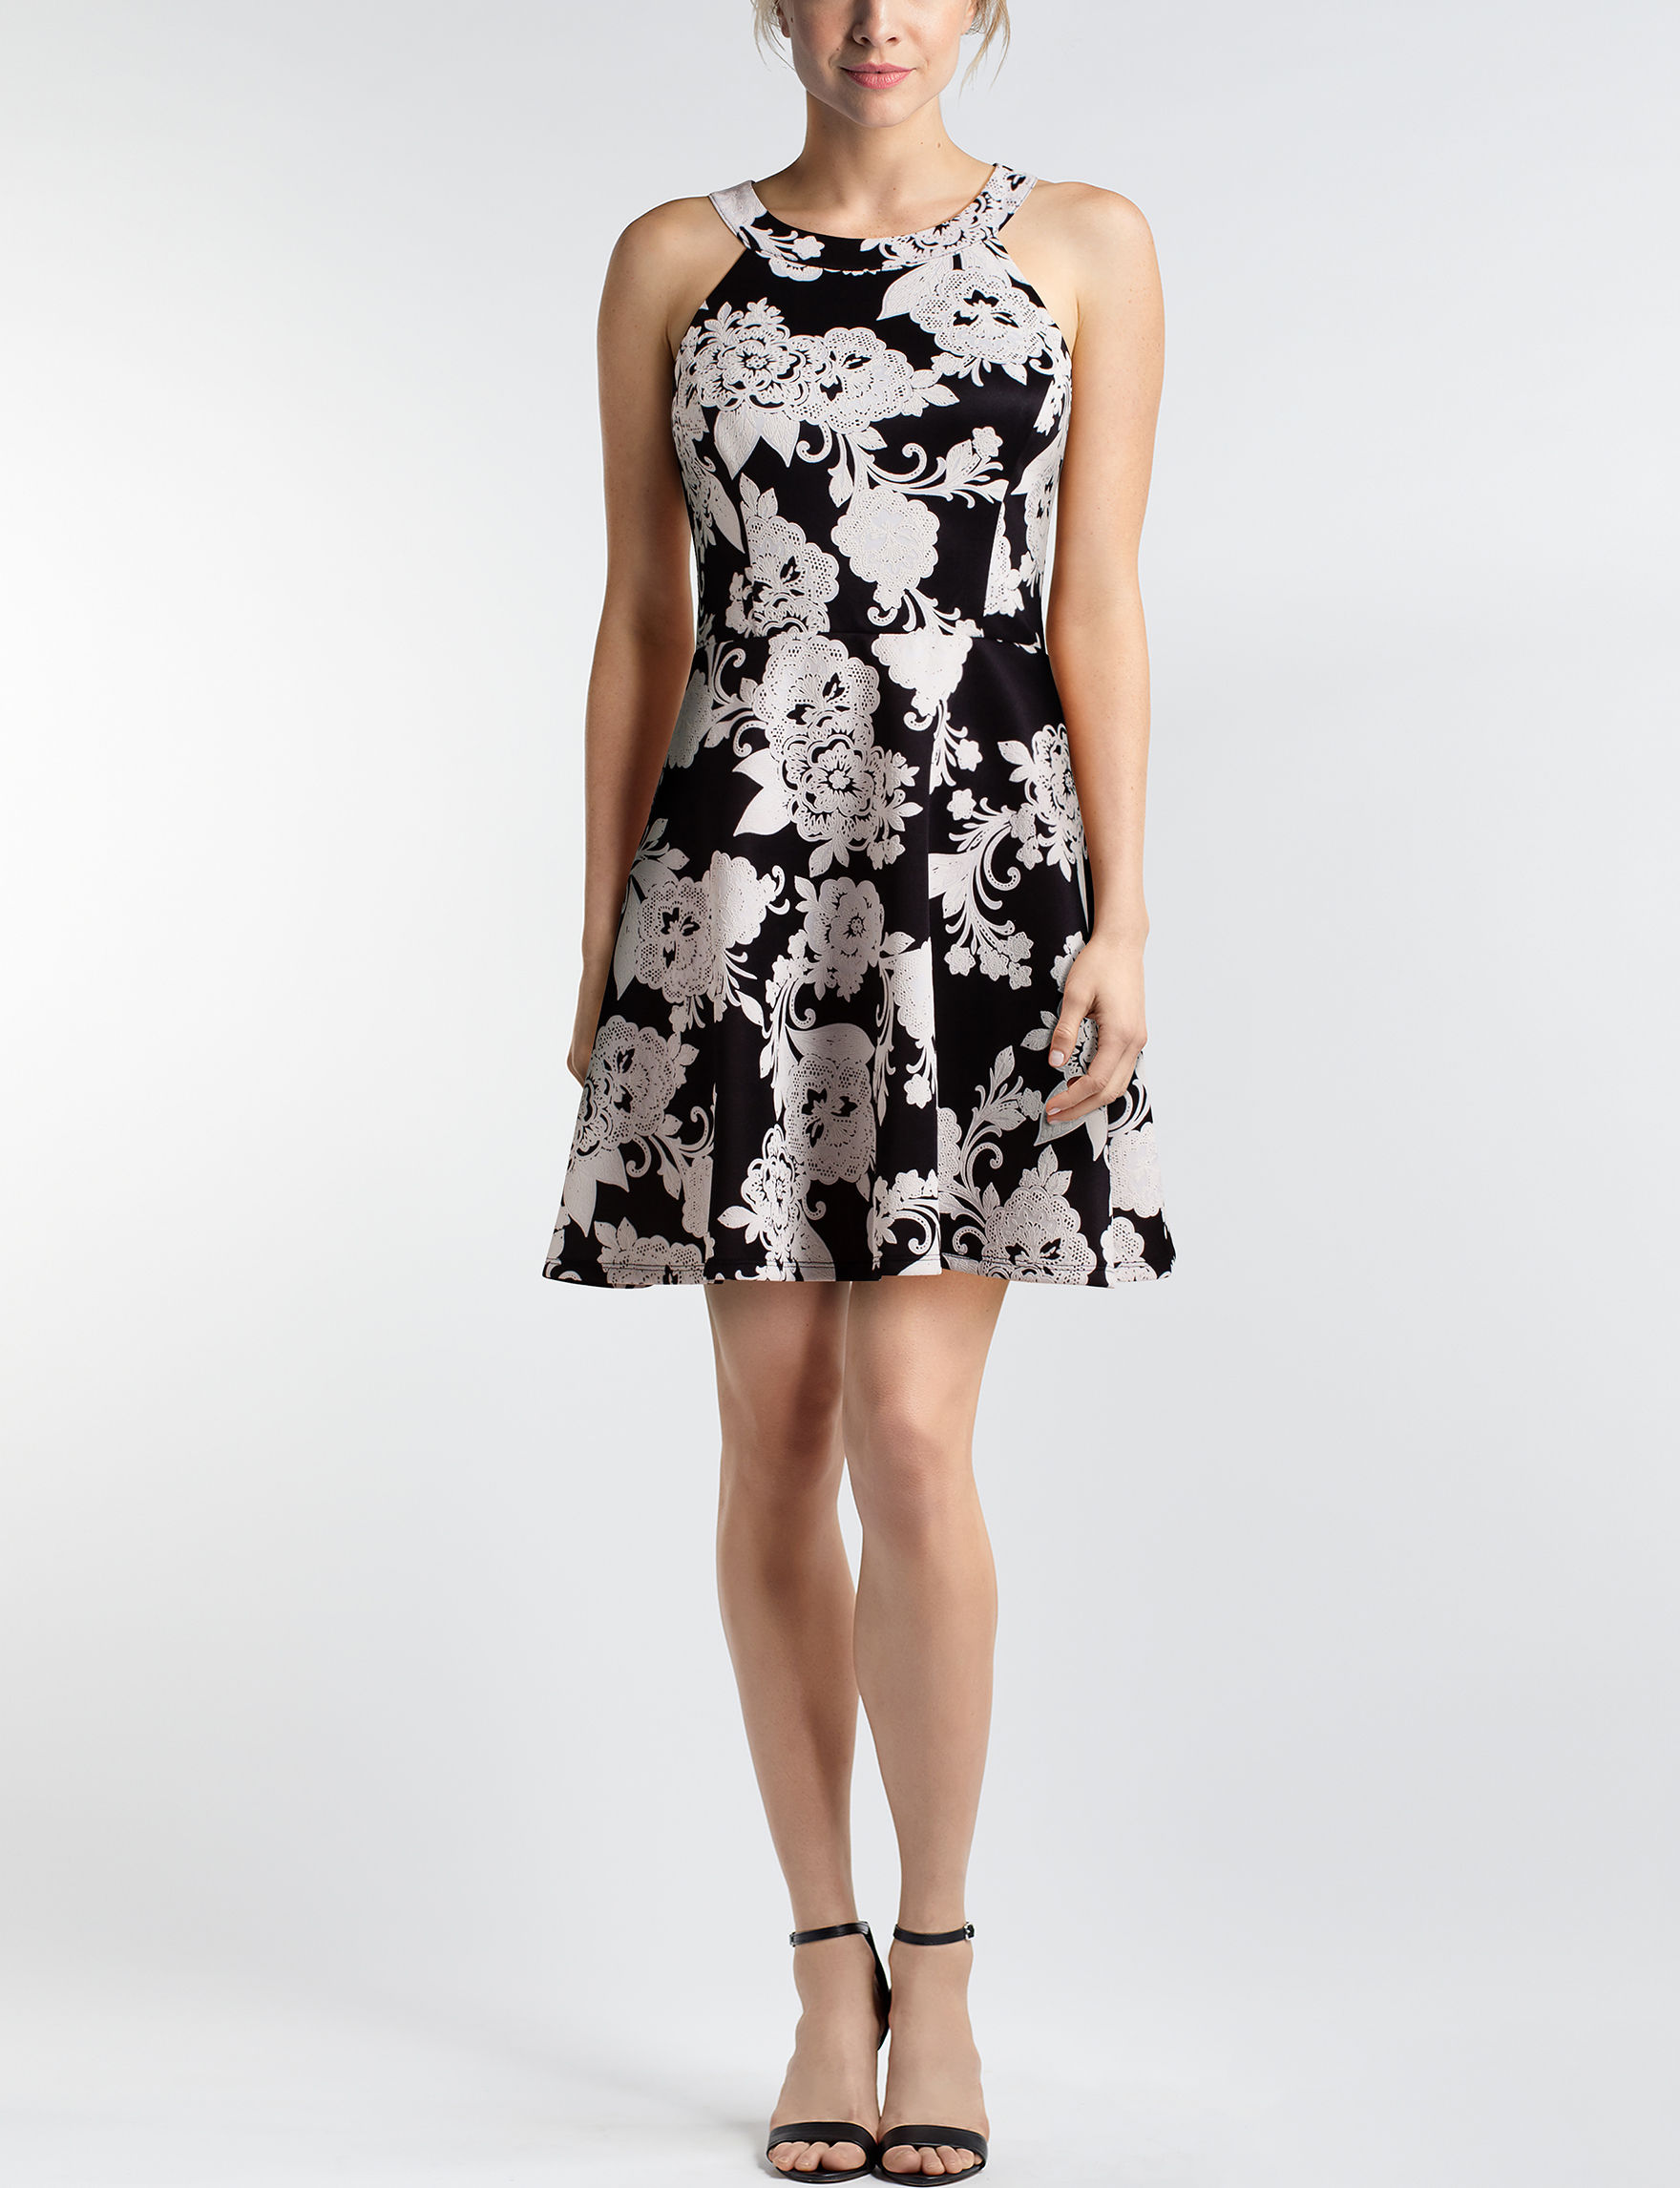 Trixxi Black / White Cocktail & Party Evening & Formal Fit & Flare Dresses